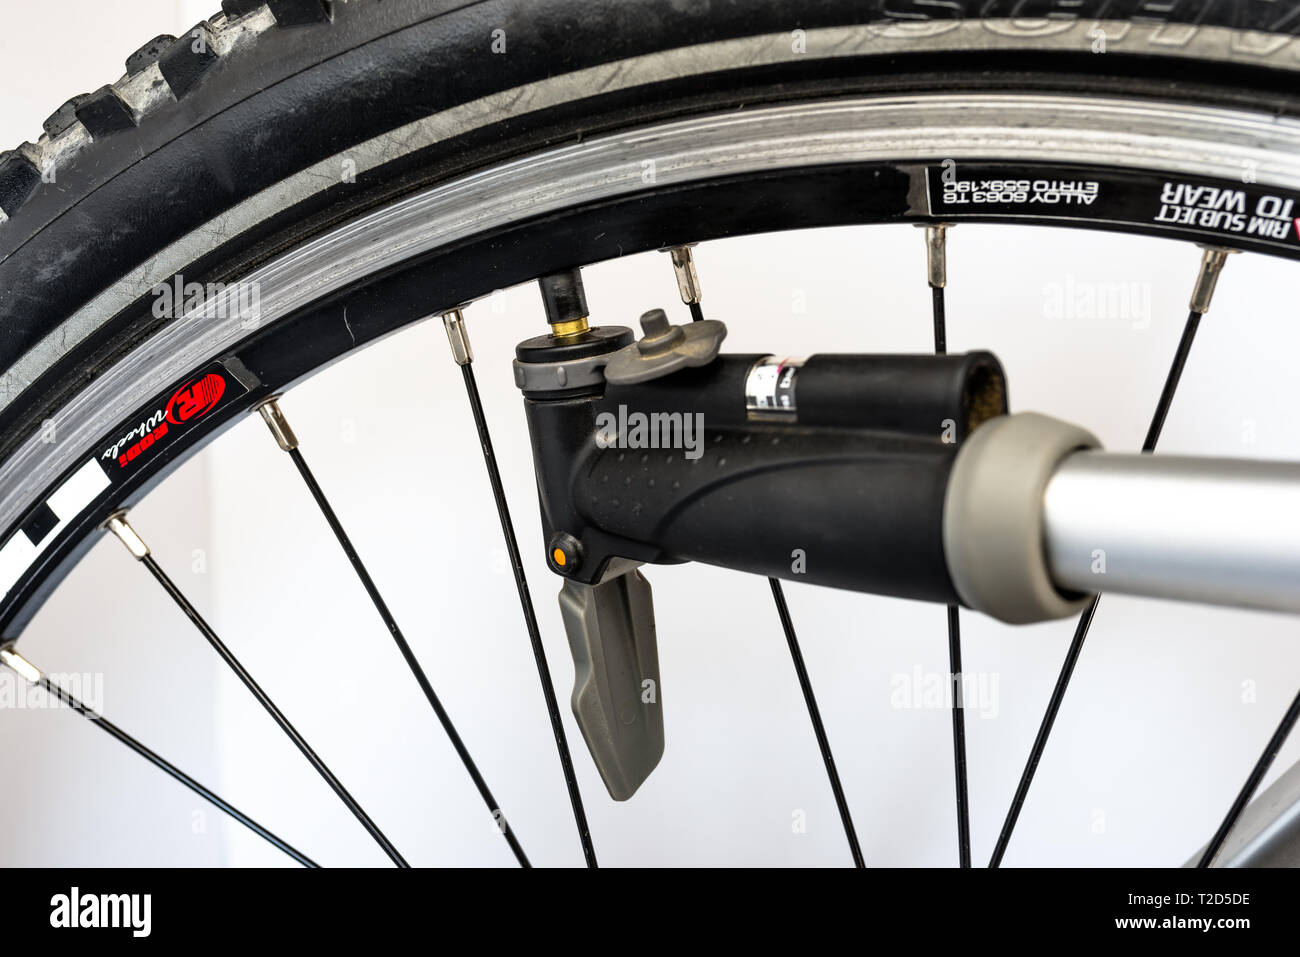 Bonn, Germany - March 29, 2019. Pumping the bicycle wheel using a hand pump with air pressure indicator in units of bar / psi. - Stock Image